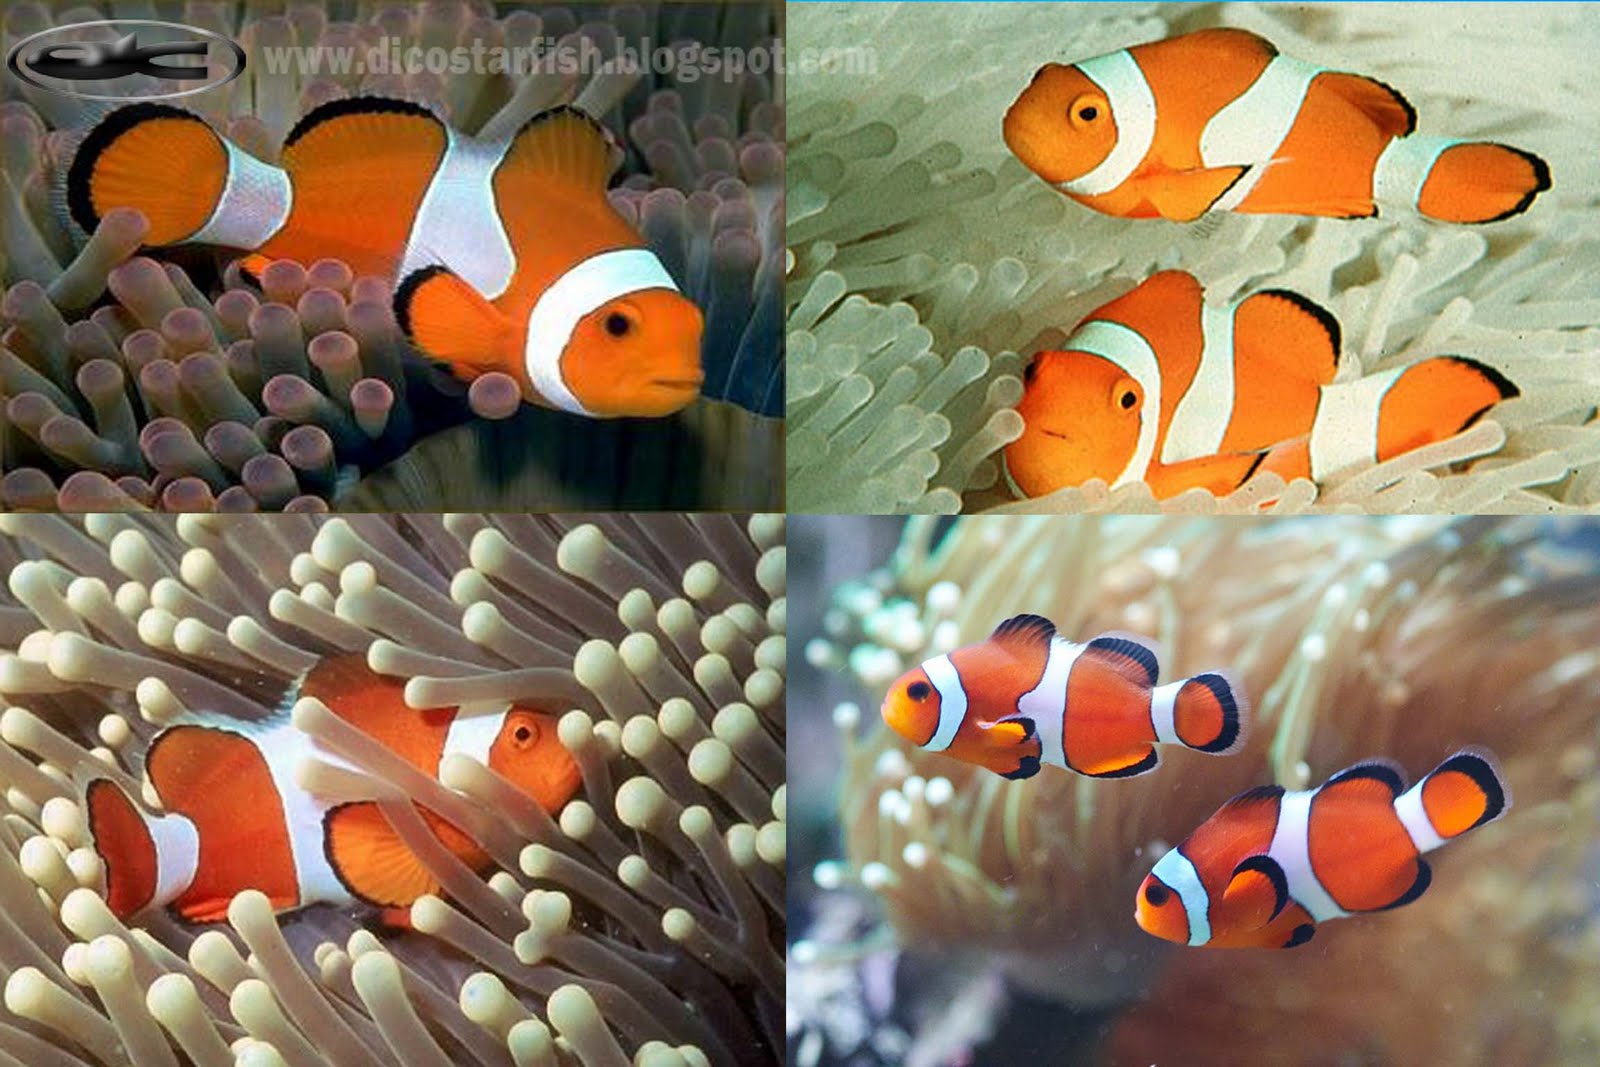 gambar amphiprion+ocellaris+ +Orange+clown+anemonefish+ gambar ikan nemo air laut